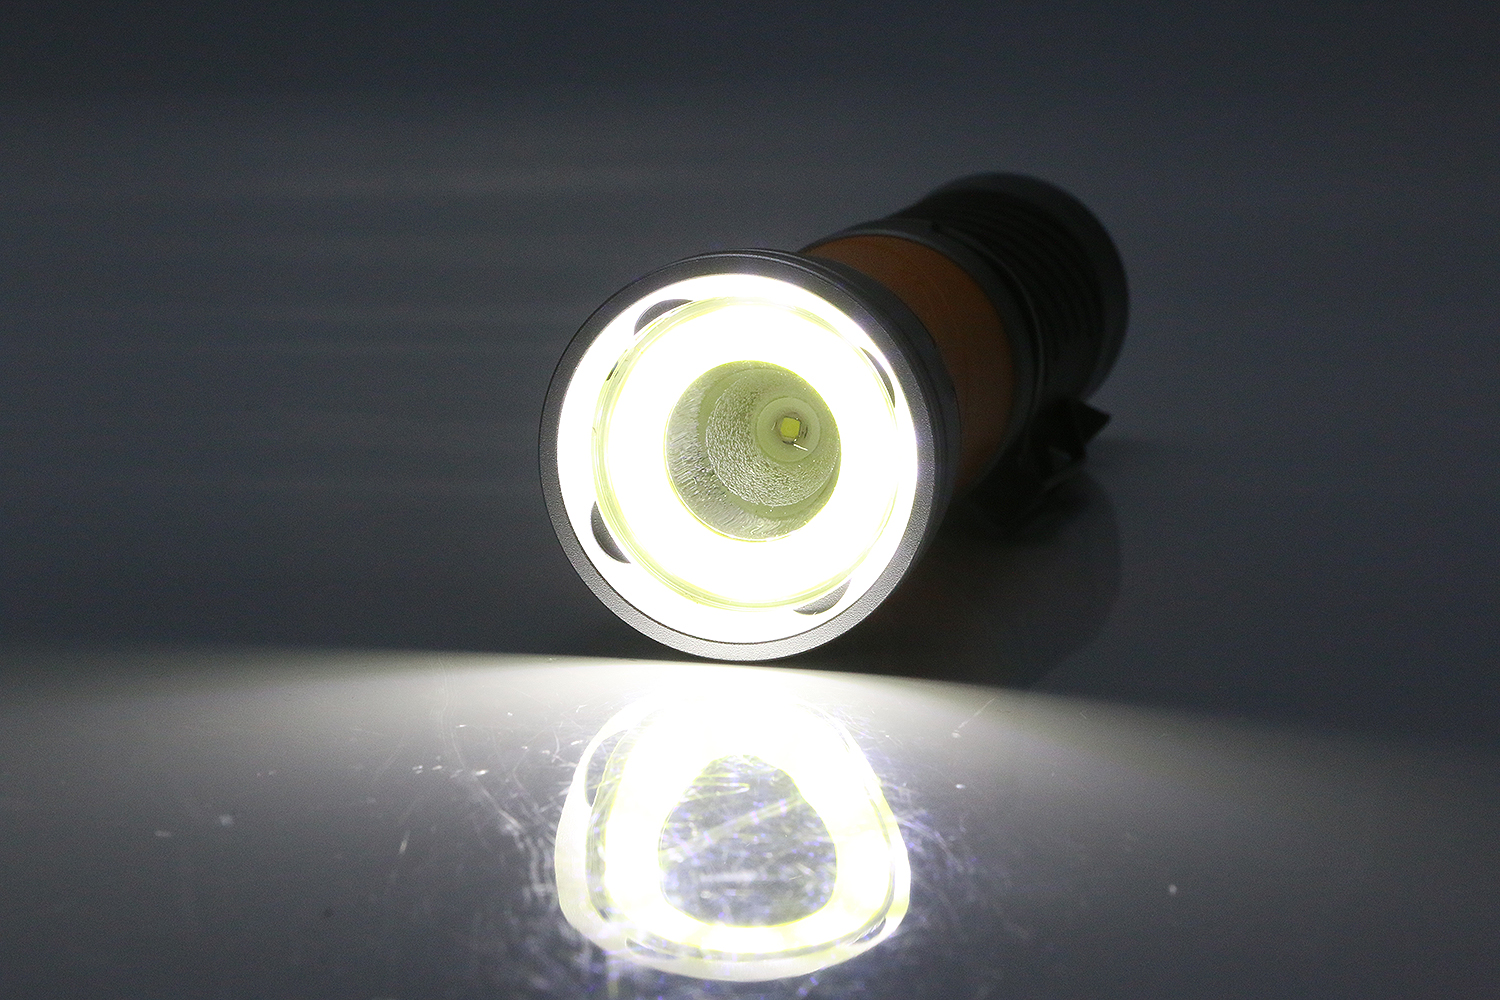 head revolved flashlight with rubber case